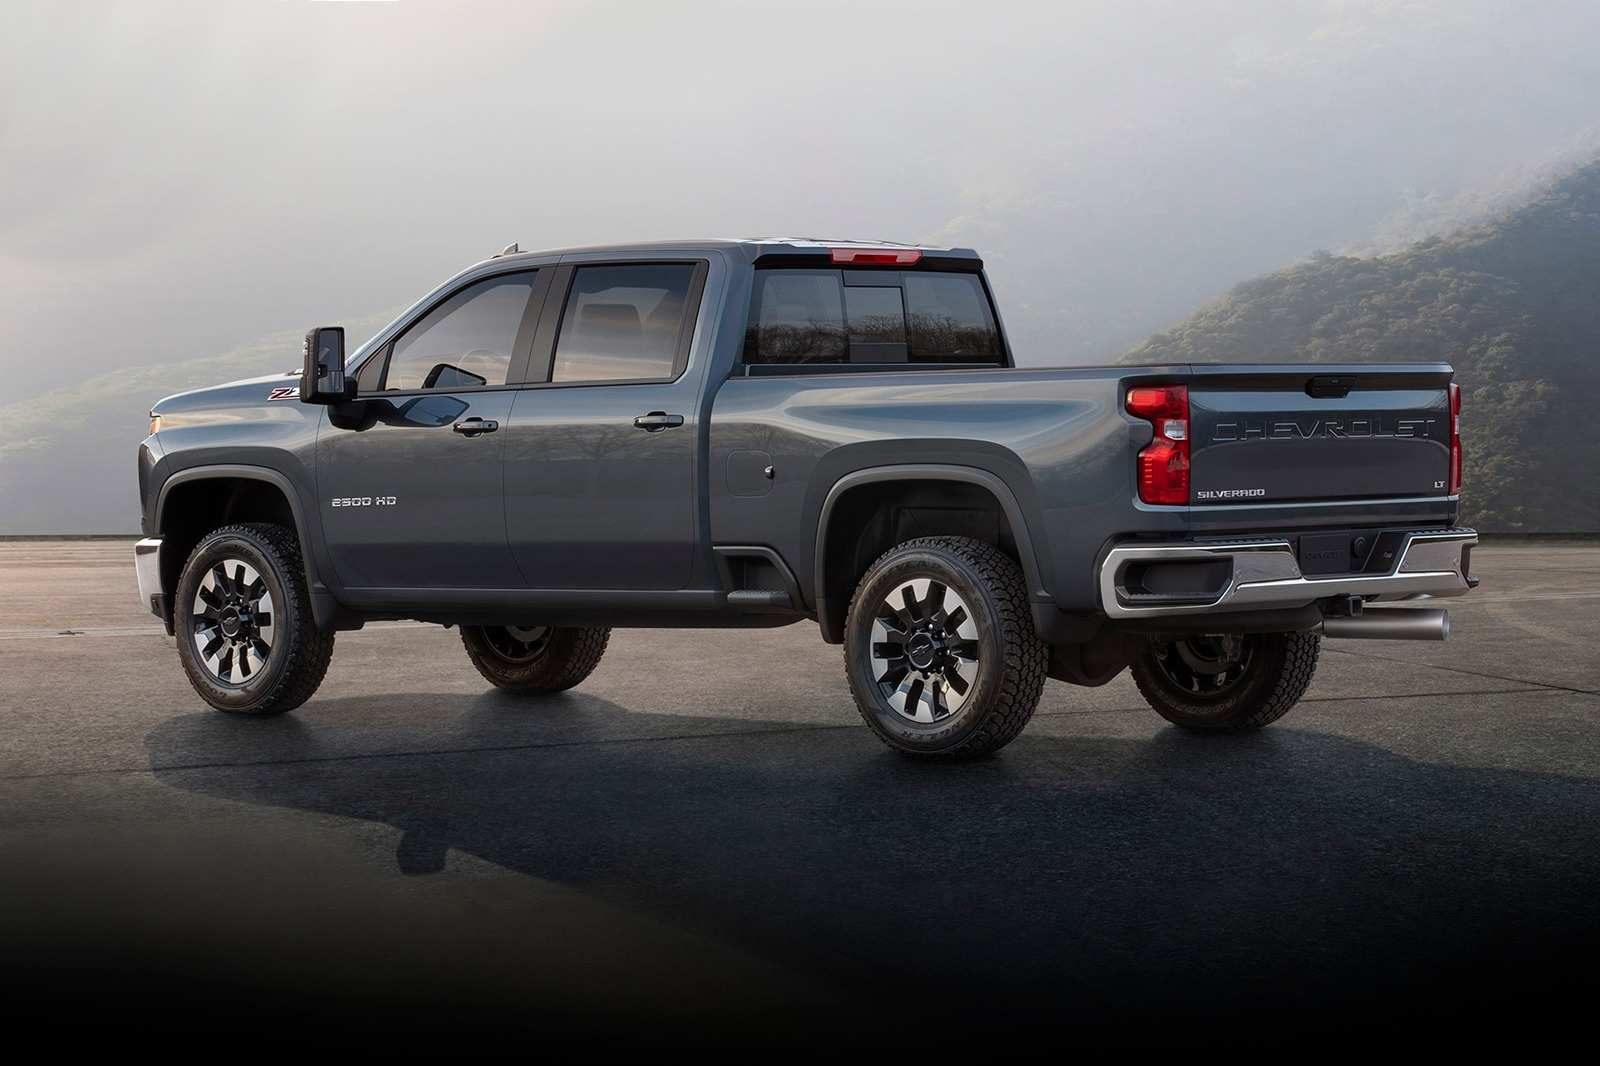 68 Best Review When Do The 2020 Chevrolet Trucks Come Out Release Date with When Do The 2020 Chevrolet Trucks Come Out